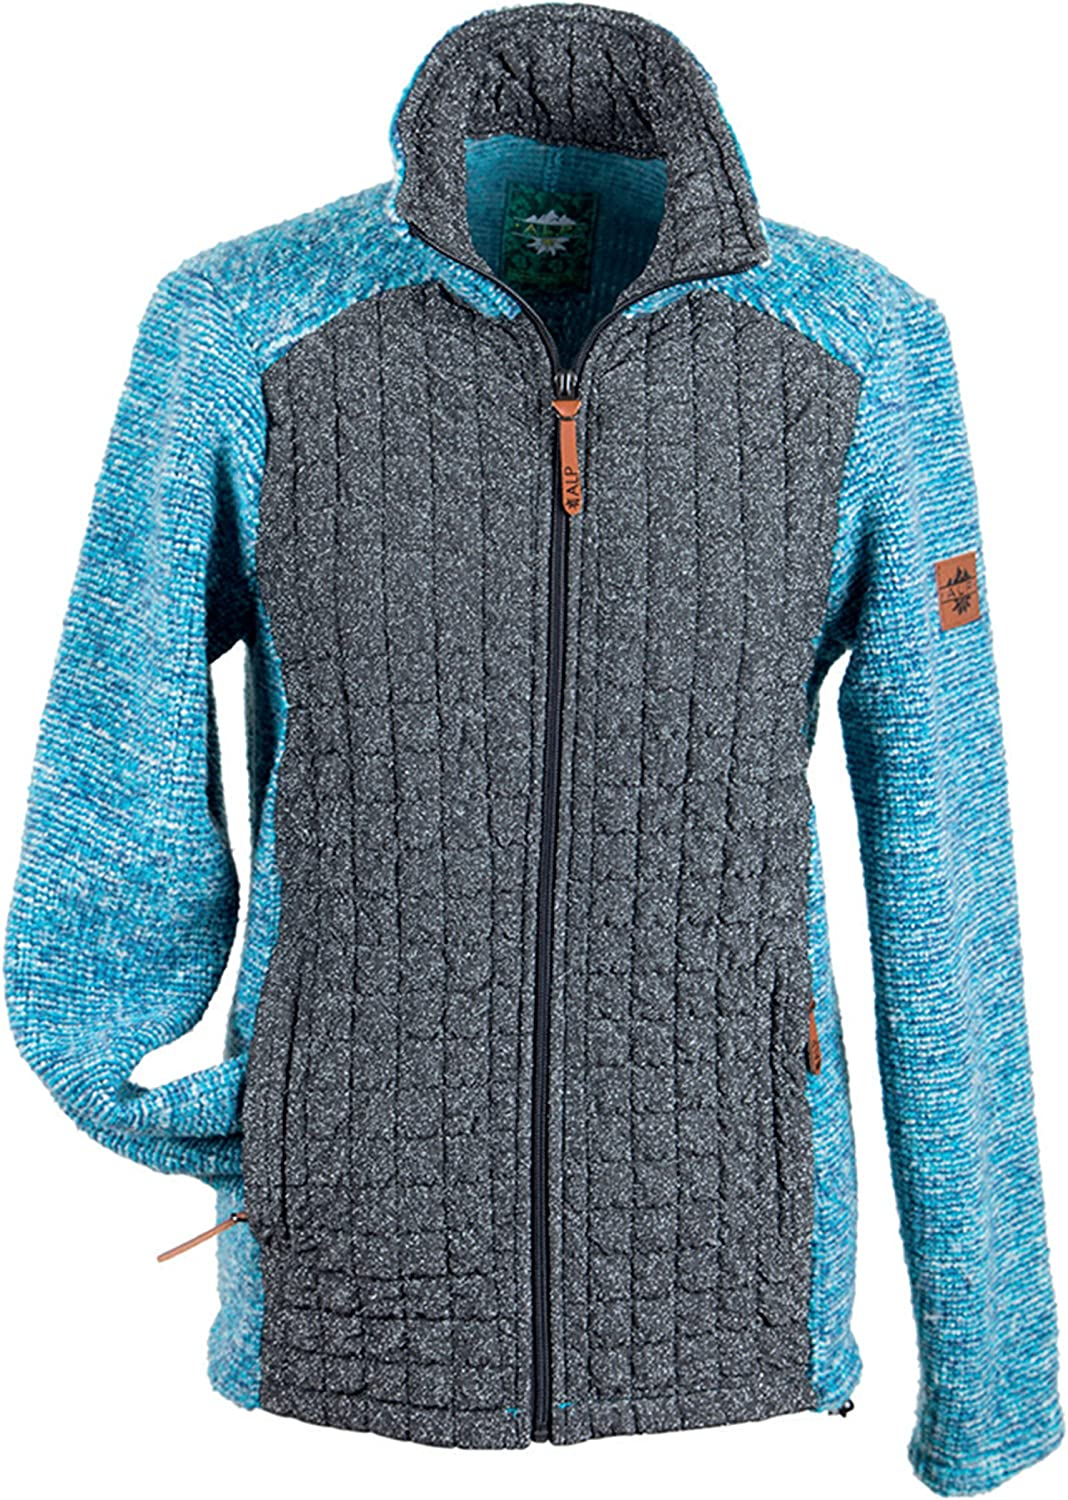 Alp by Brush Ladies WoolMix Jacket with LurexQuilt